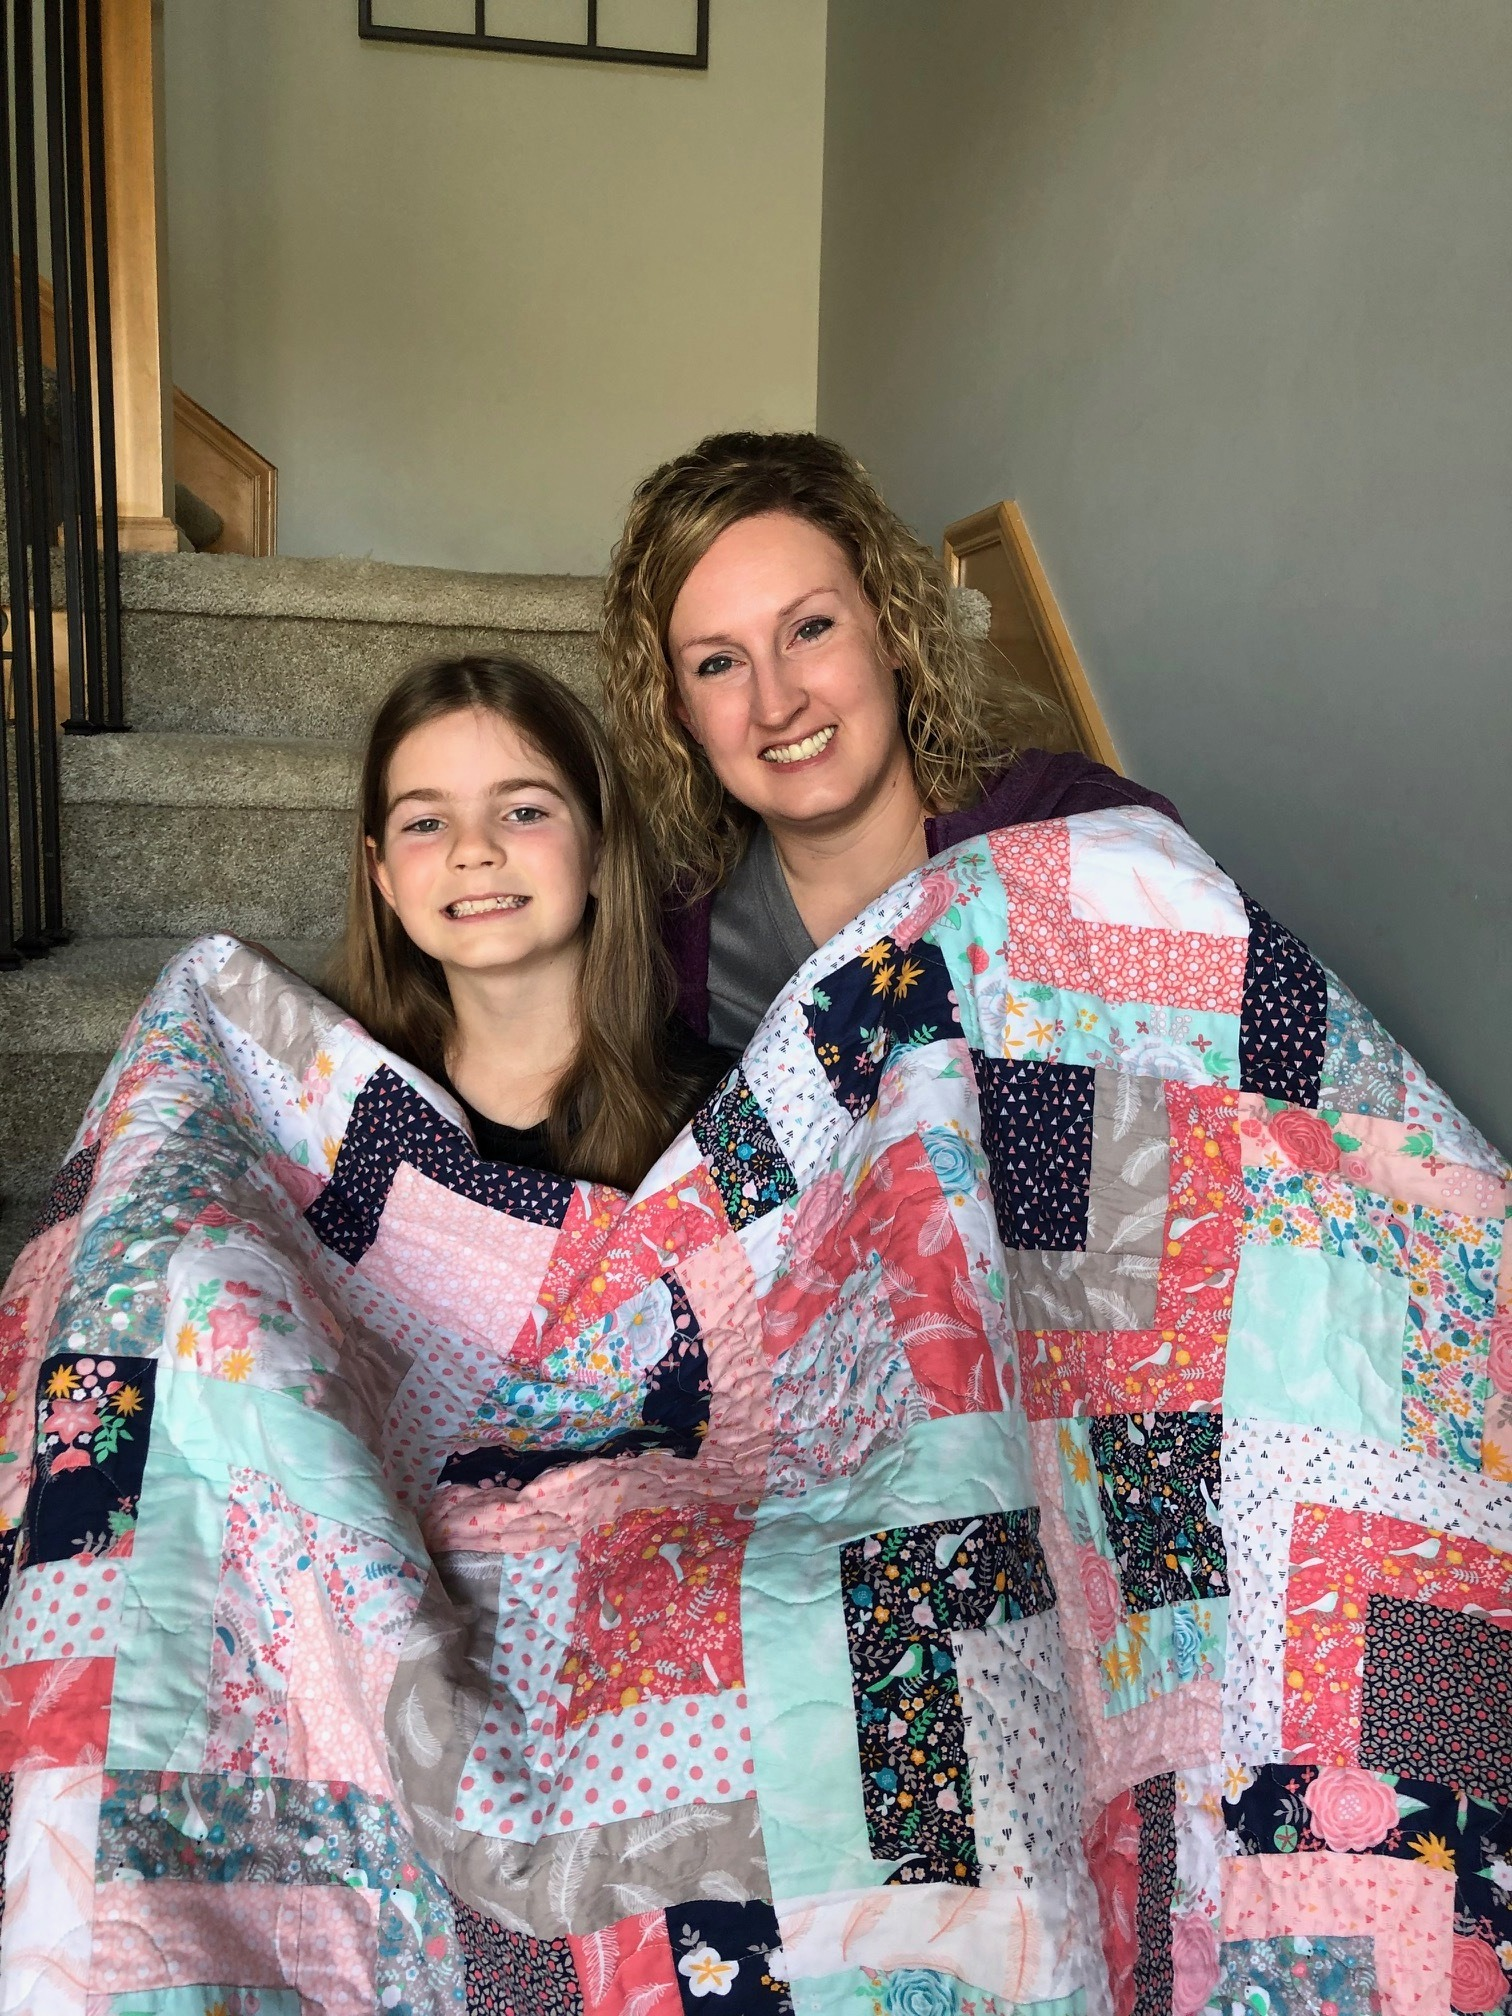 Jill and daughter quilt